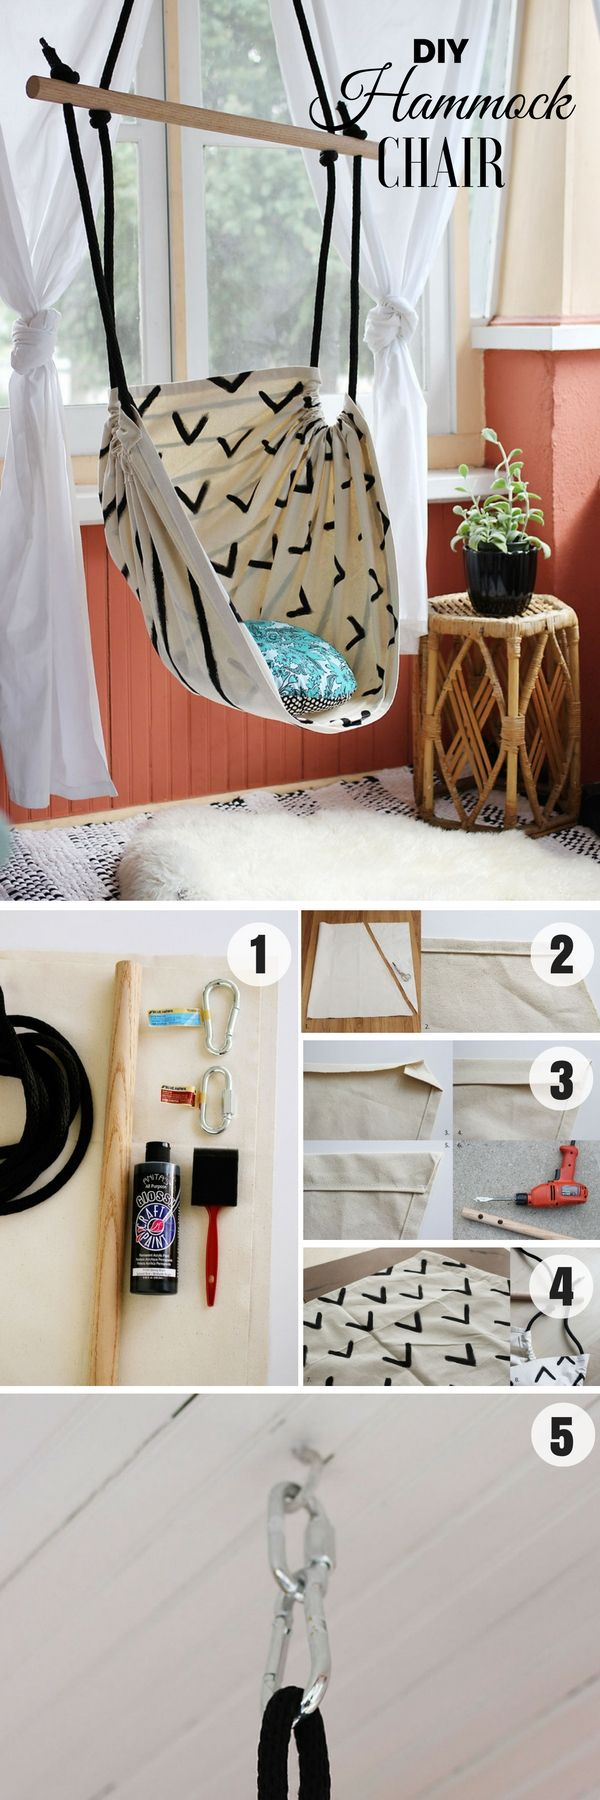 Design Diy Ideas best 25 diy room ideas on pinterest easy decor organization and decorations for room